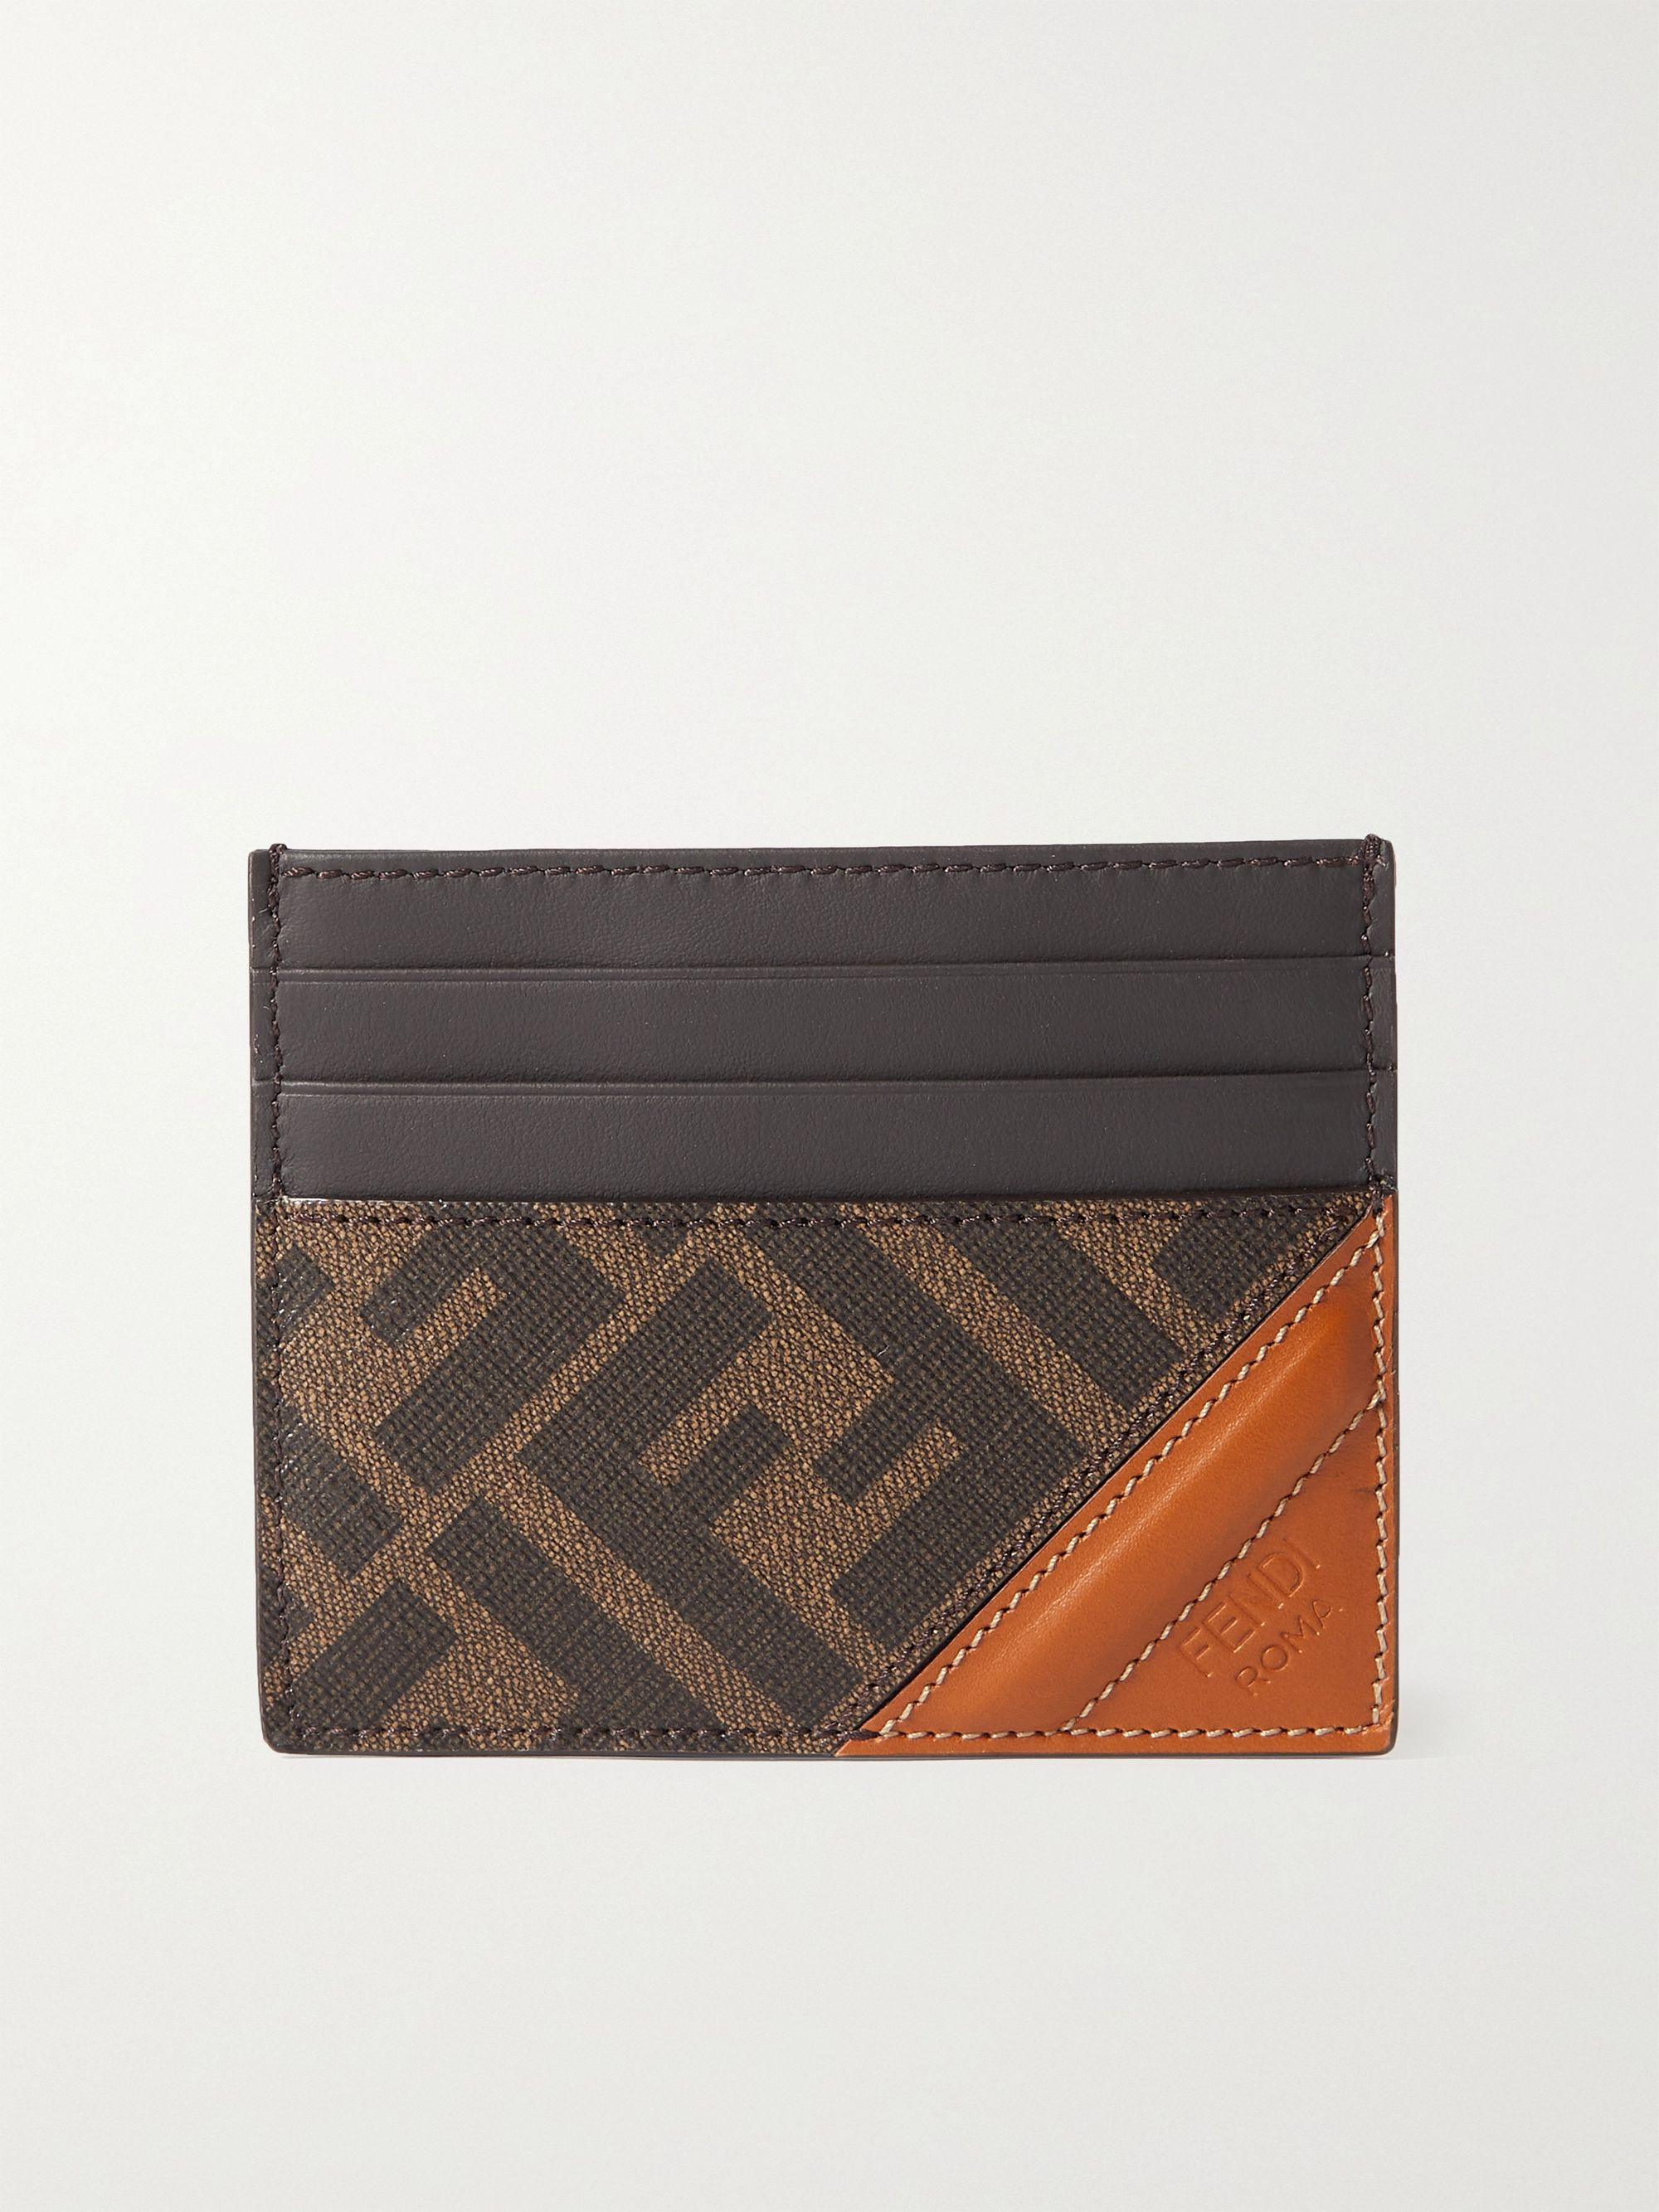 FENDI Leather-Trimmed Monogrammed Coated-Canvas Cardholder